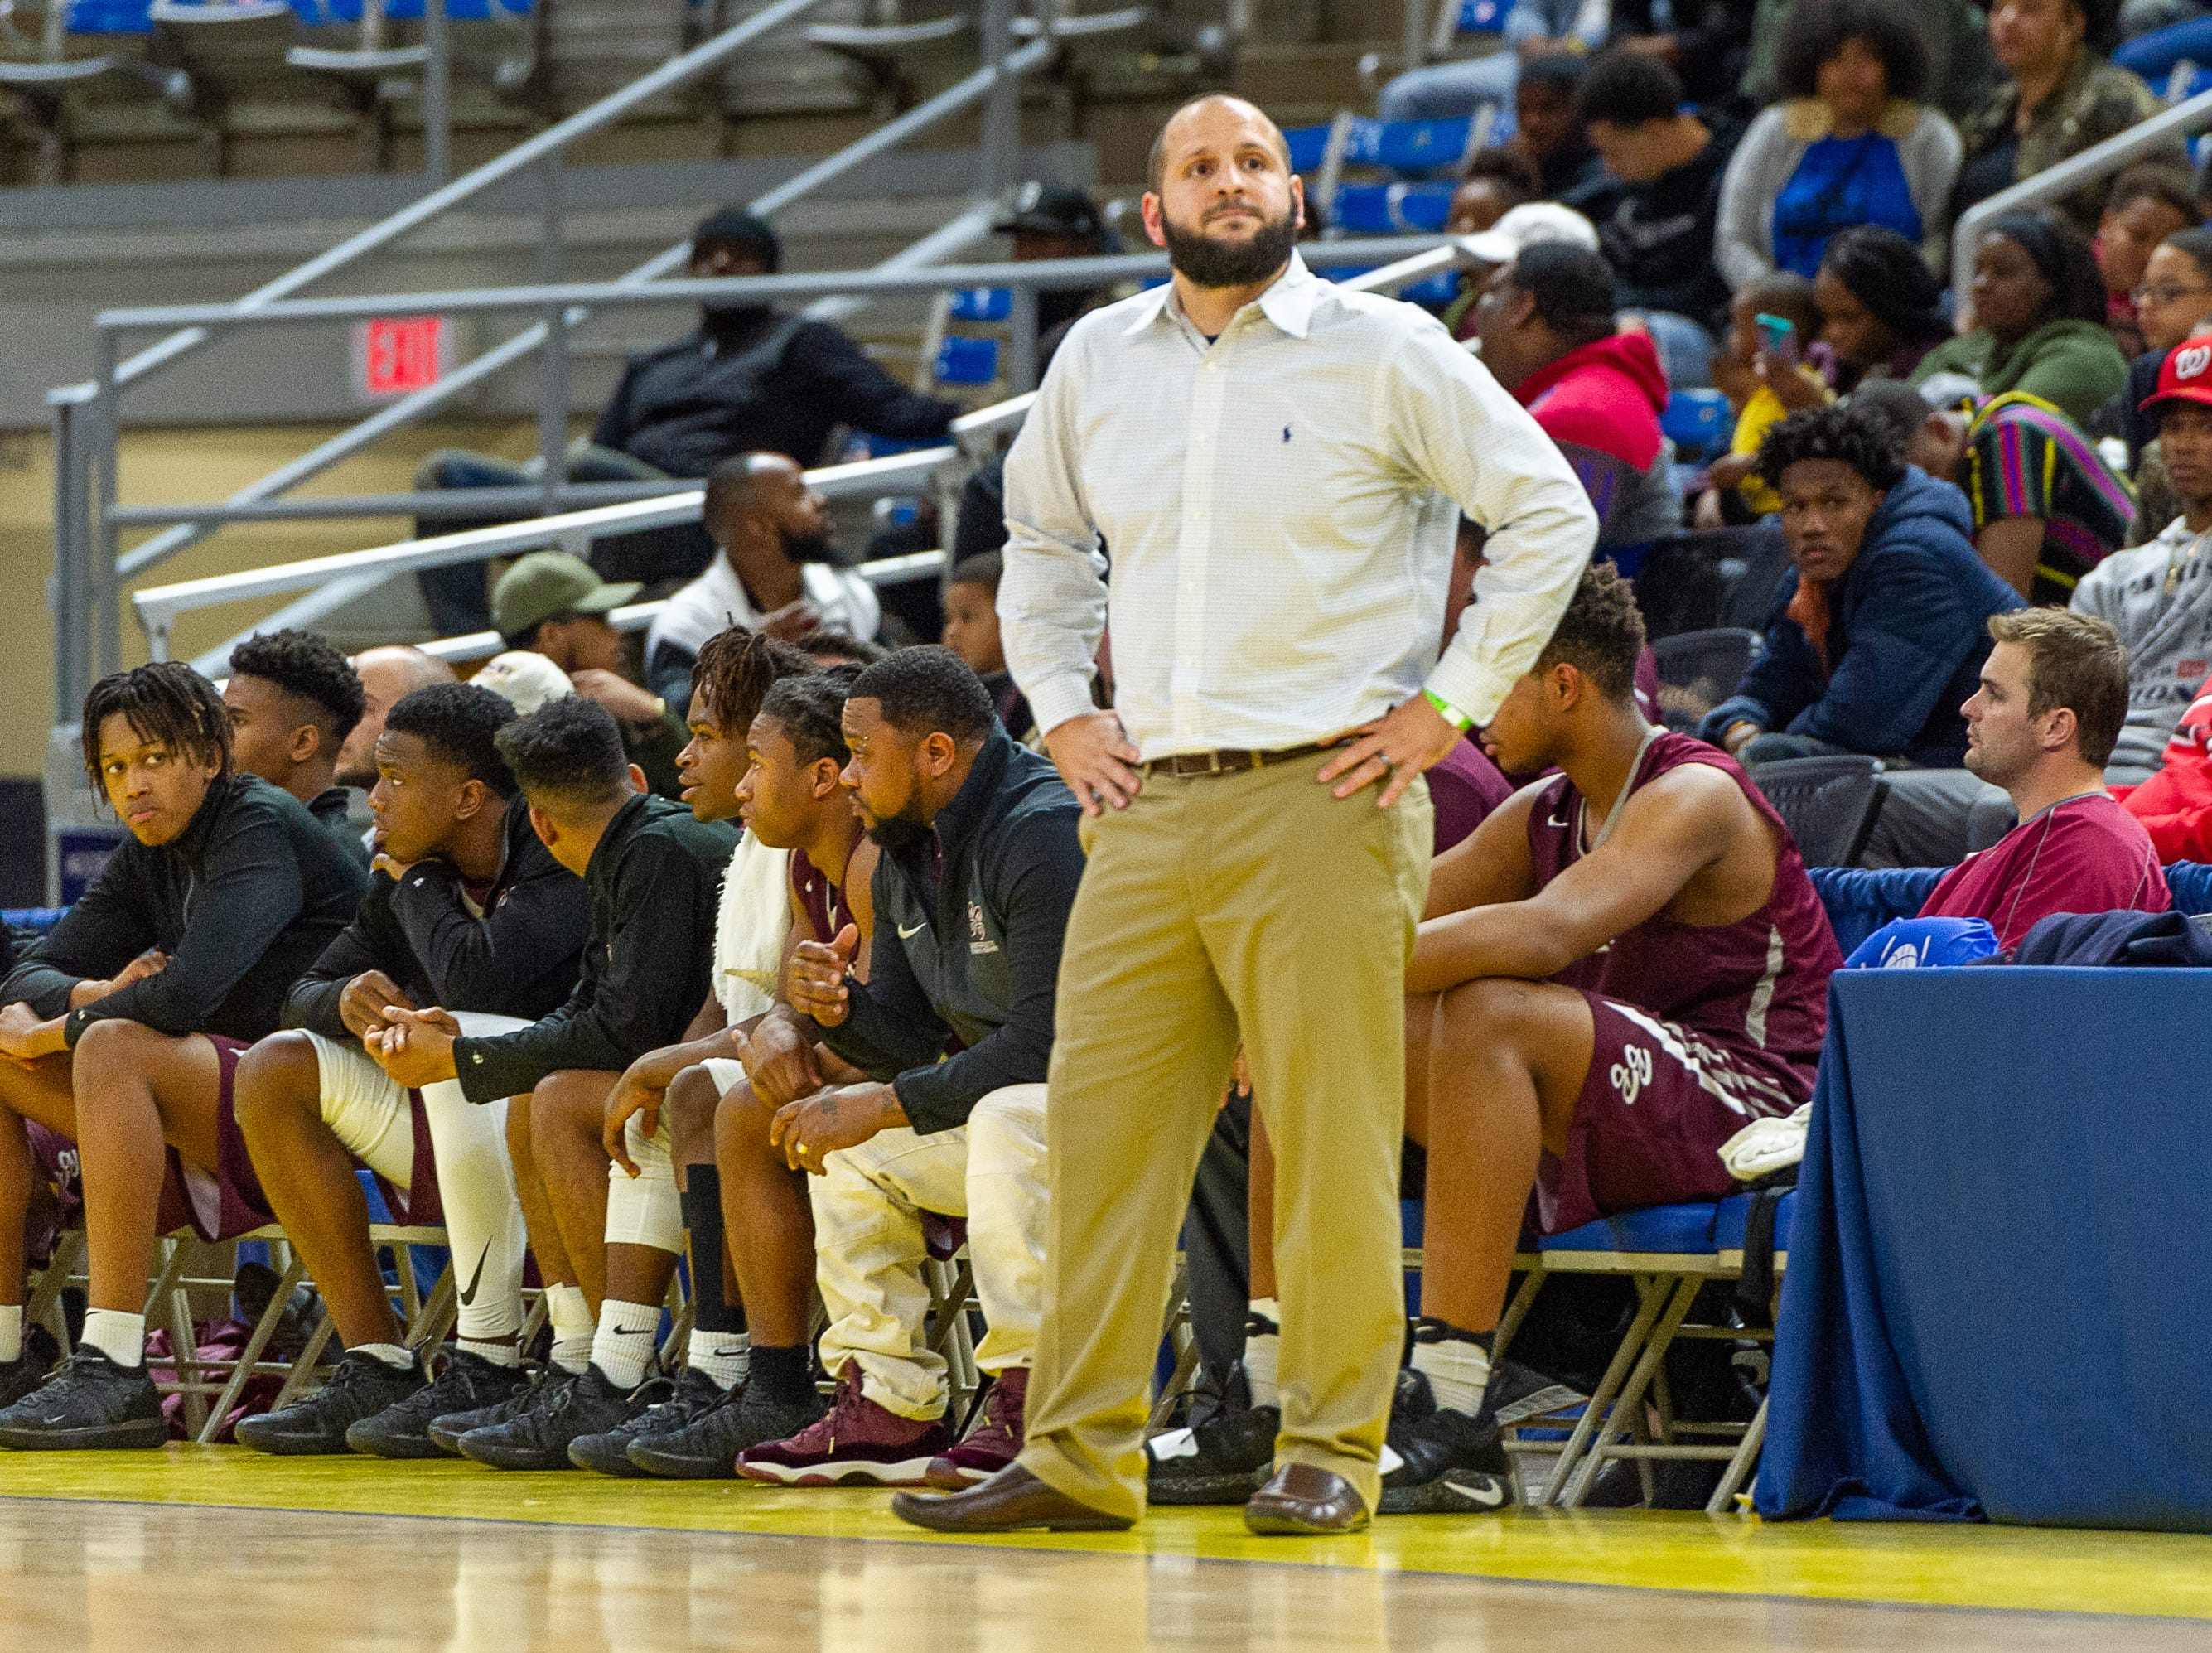 Breaux Bridge Head Coach Chad Pourciau II as Breaux Bridge takes on Leesville in the semi final round of the LHSAA Basketball Championship Tournament. Tuesday, March 5, 2019.